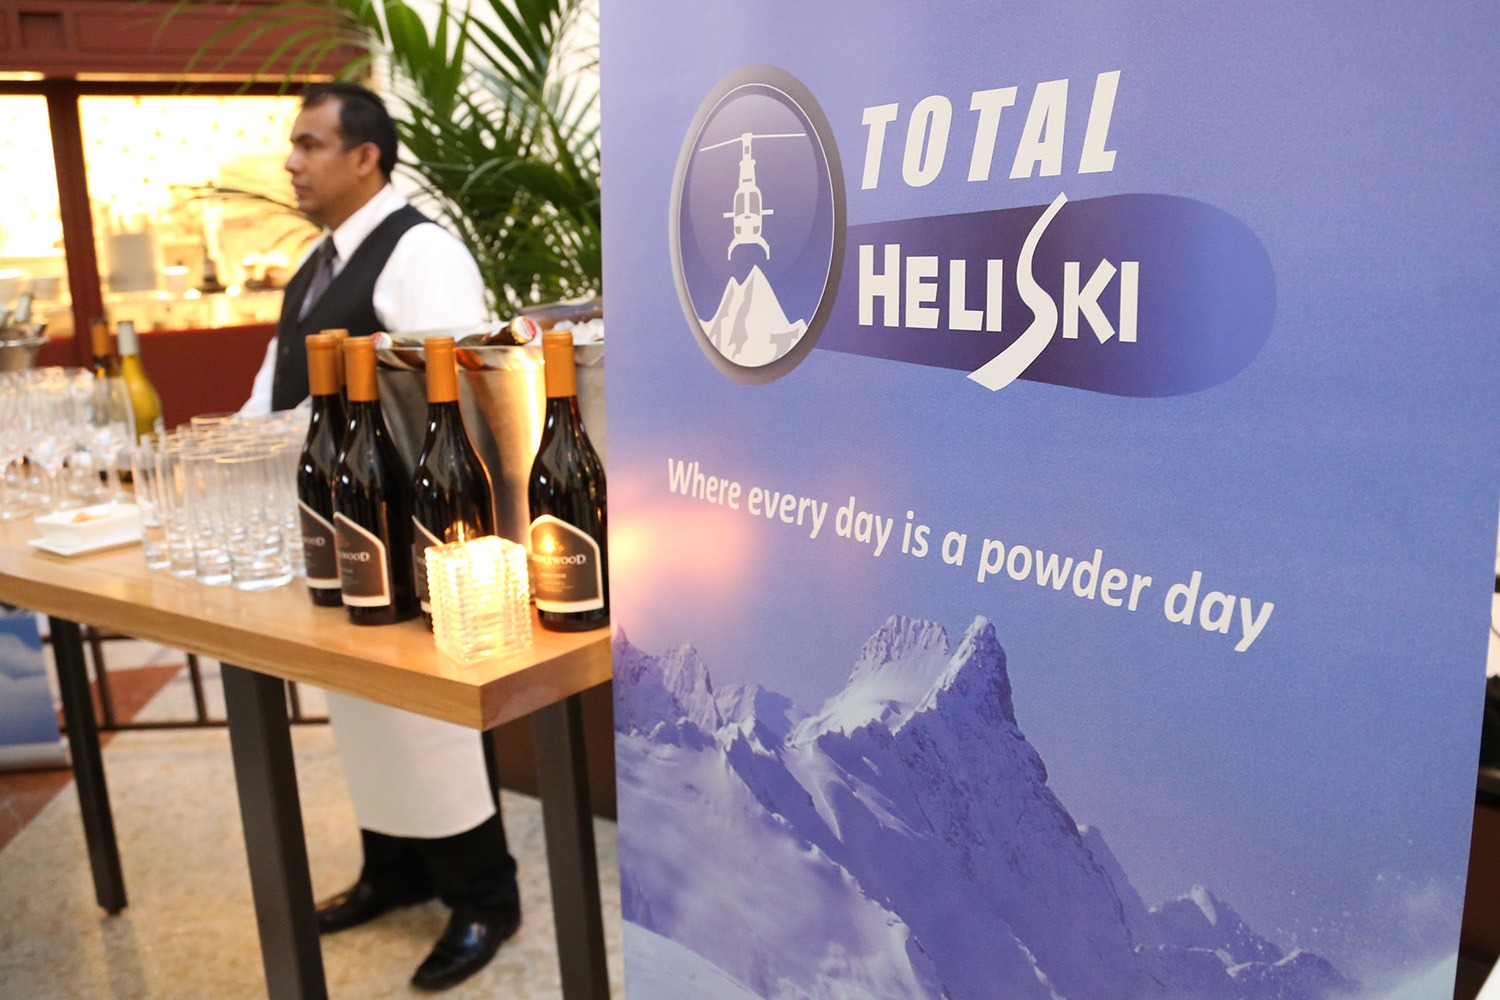 Total Heliski's US of A Launch 2012